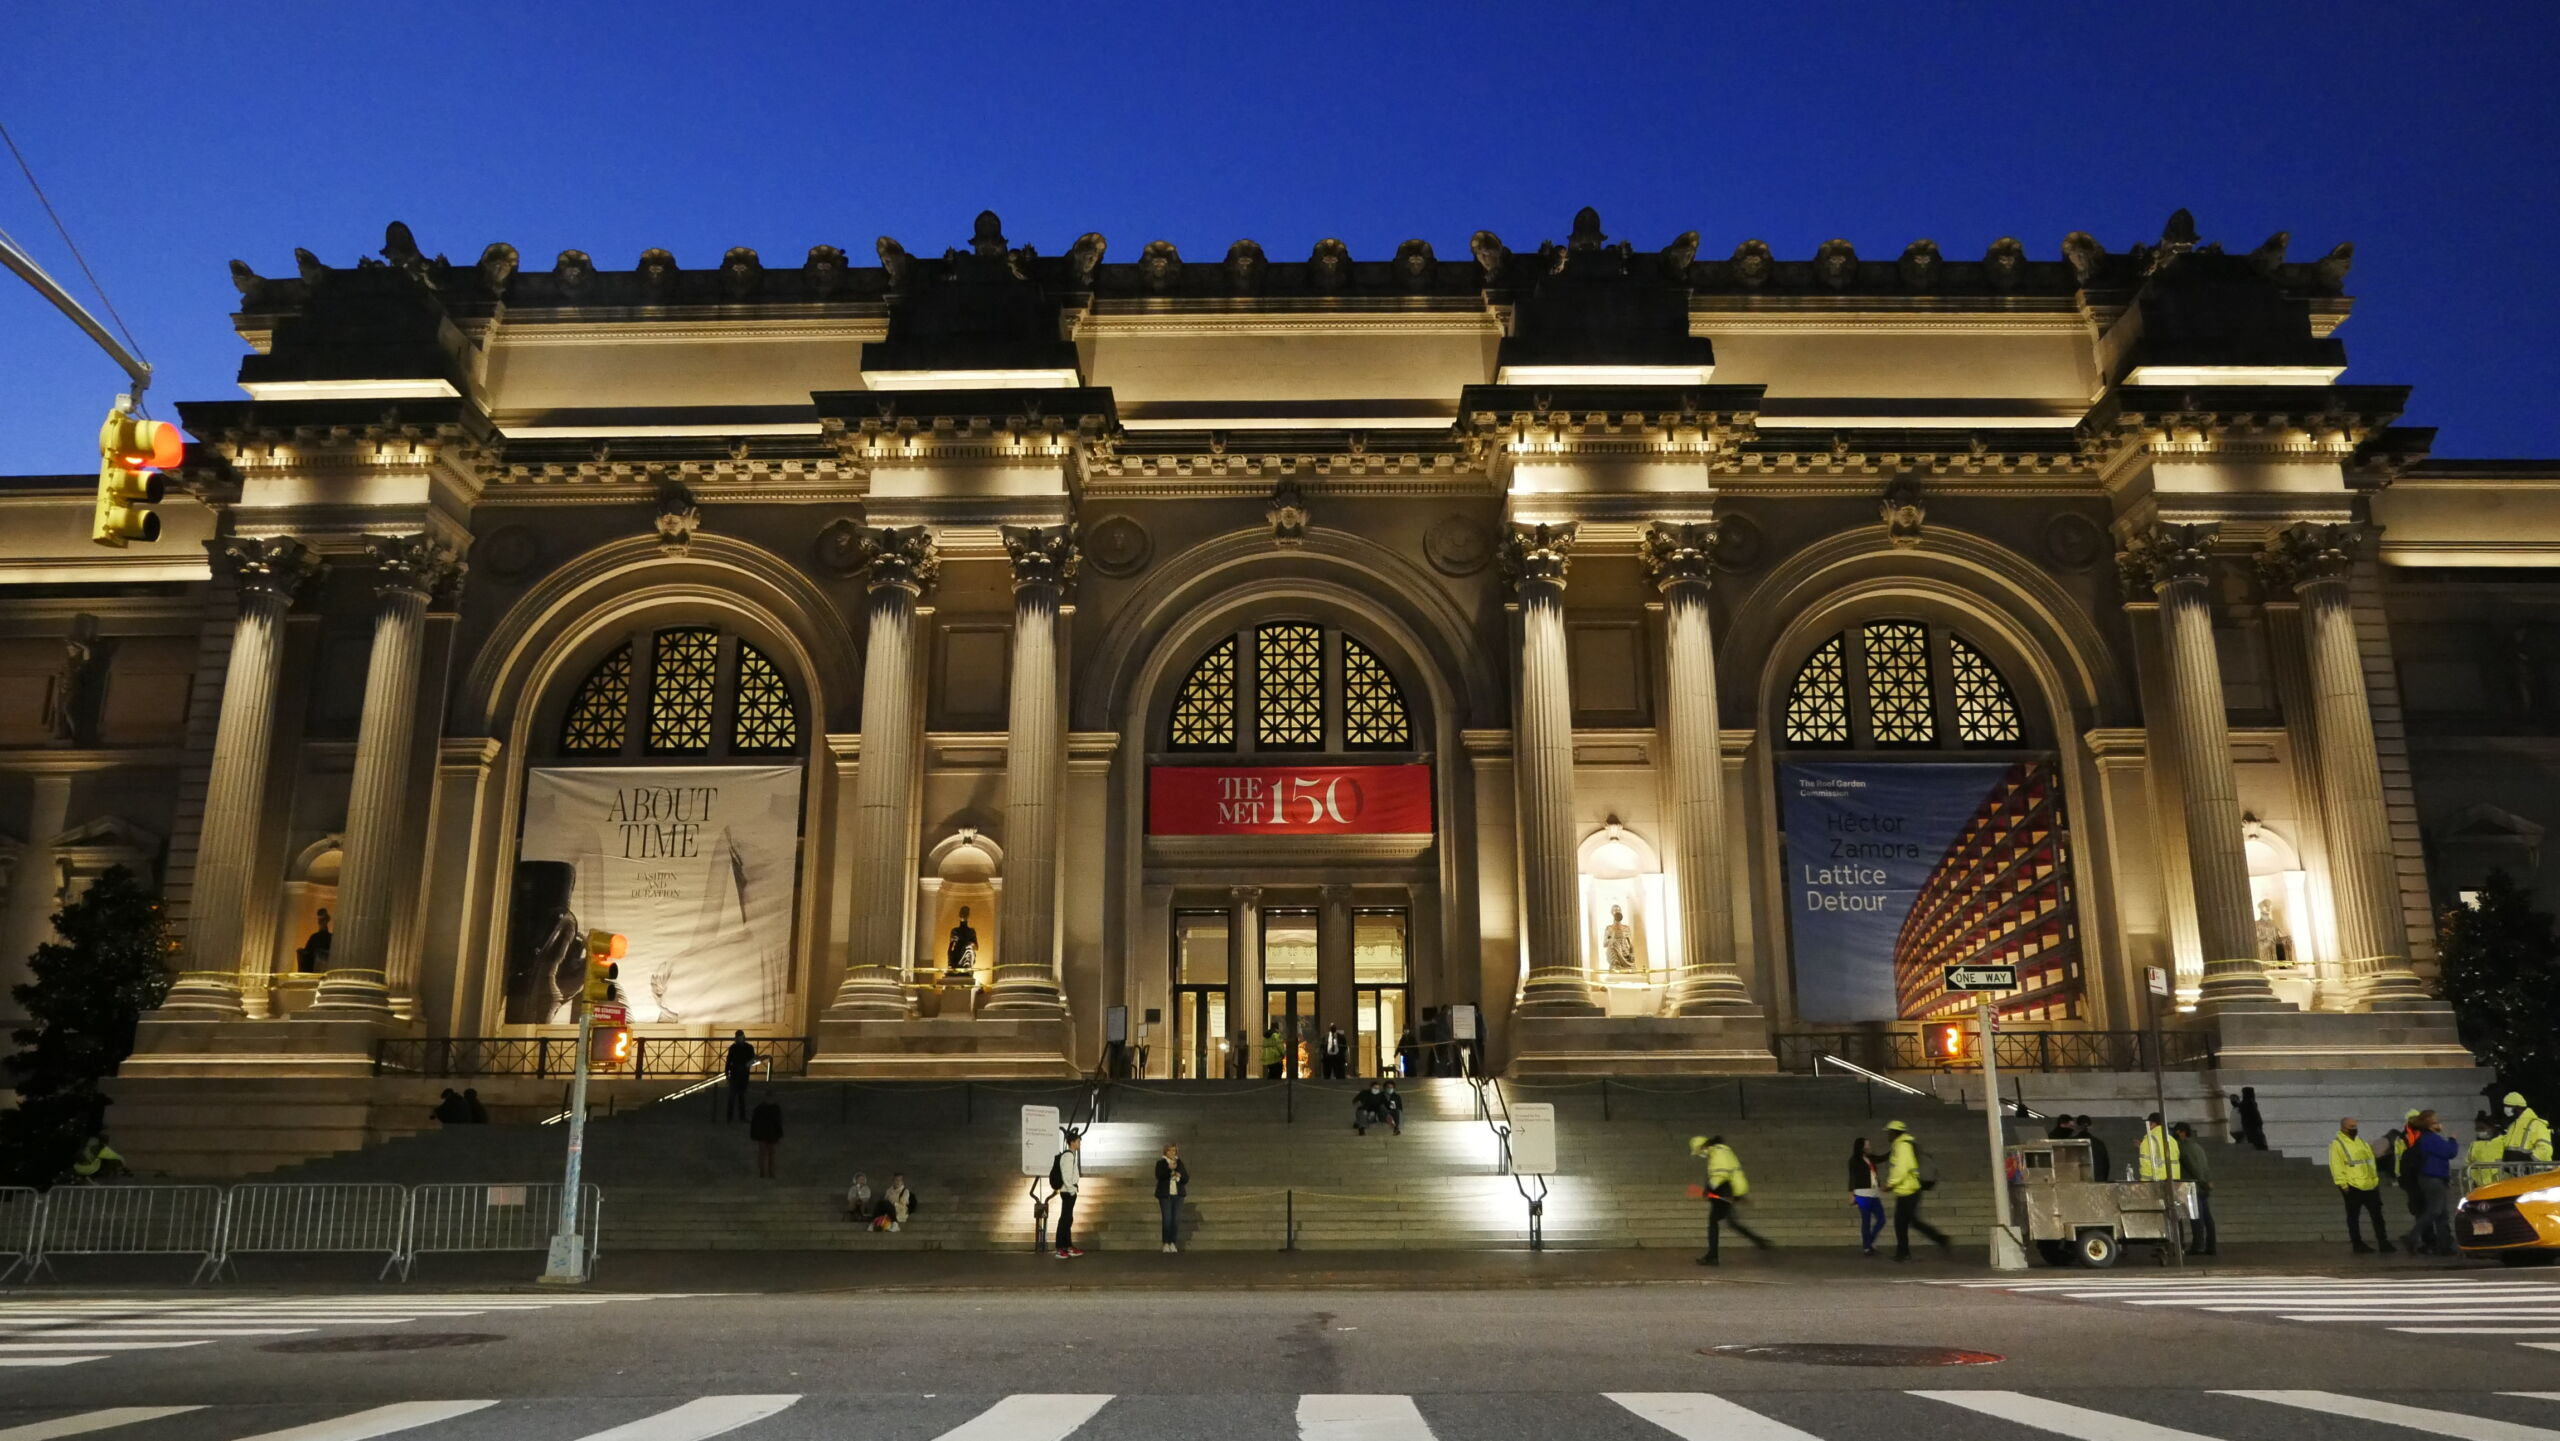 The Met Museum, New York, as the Wangechi Mutu's sculptures are installed. Credit: Eddie Knox © Oxford Films, 2021. Image courtesy PBS.